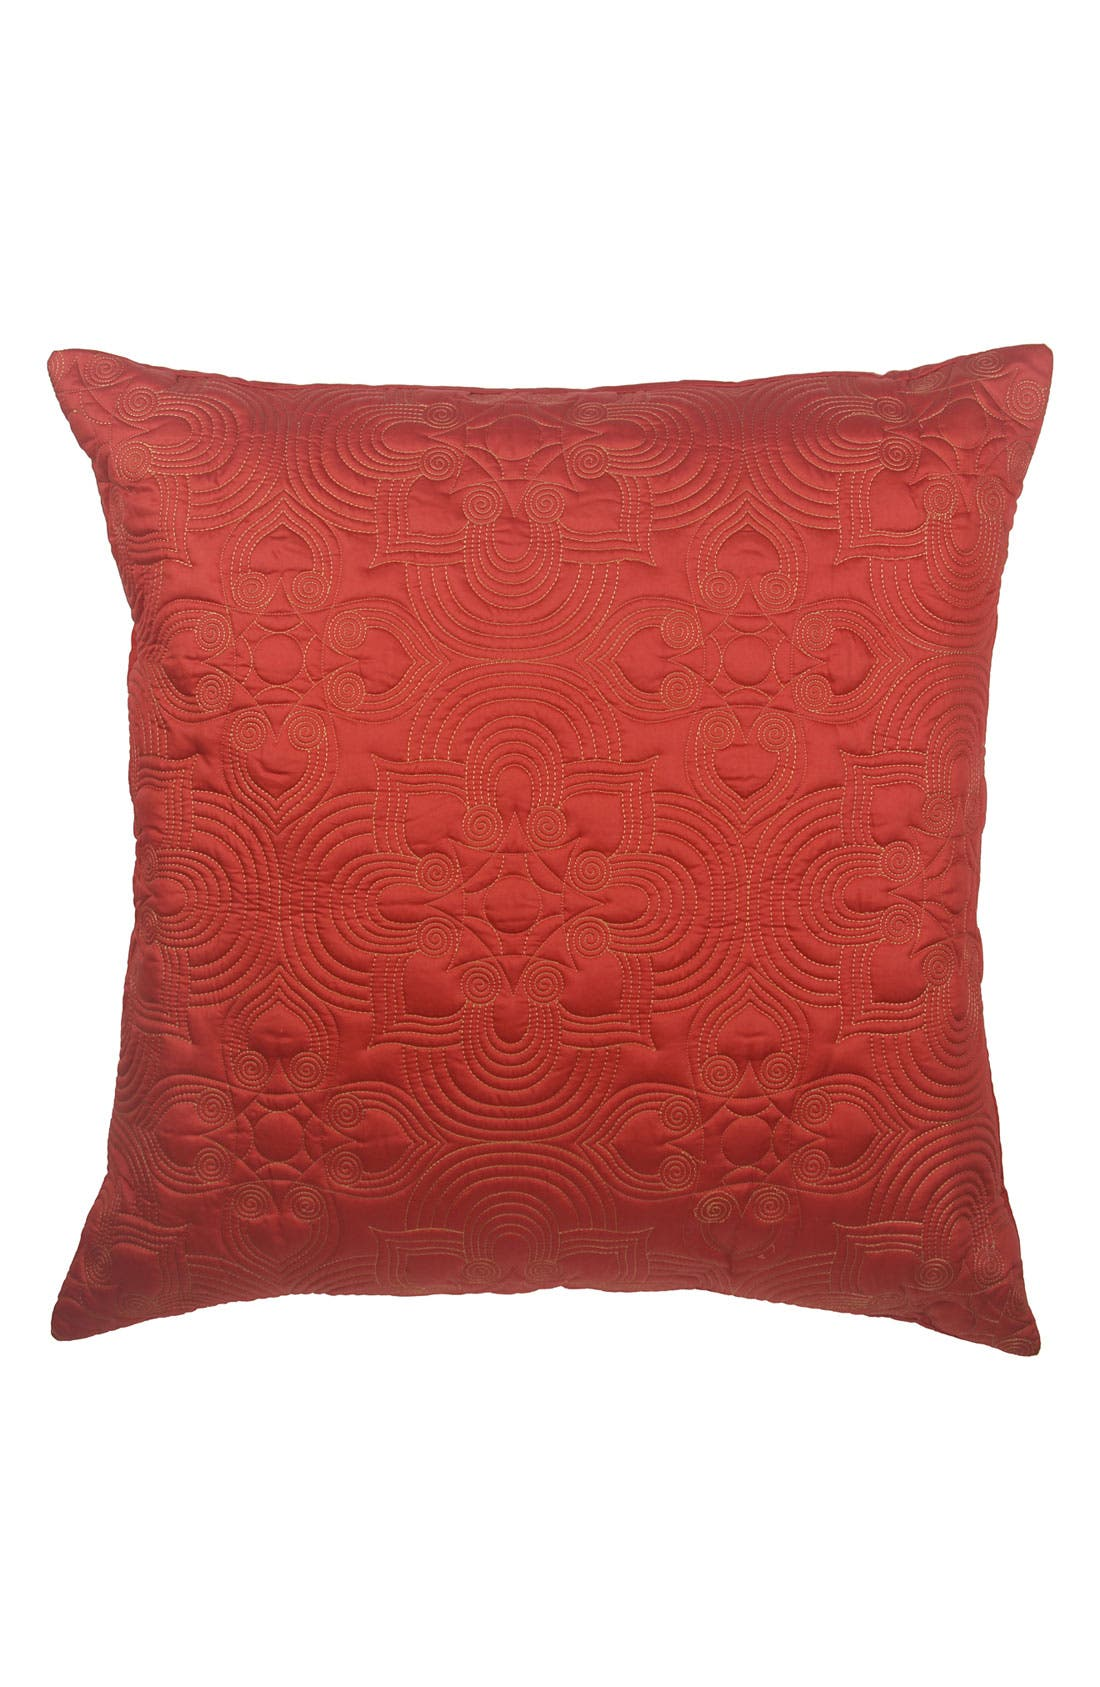 Alternate Image 1 Selected - Blissliving Home 'Nirvana' Euro Sham